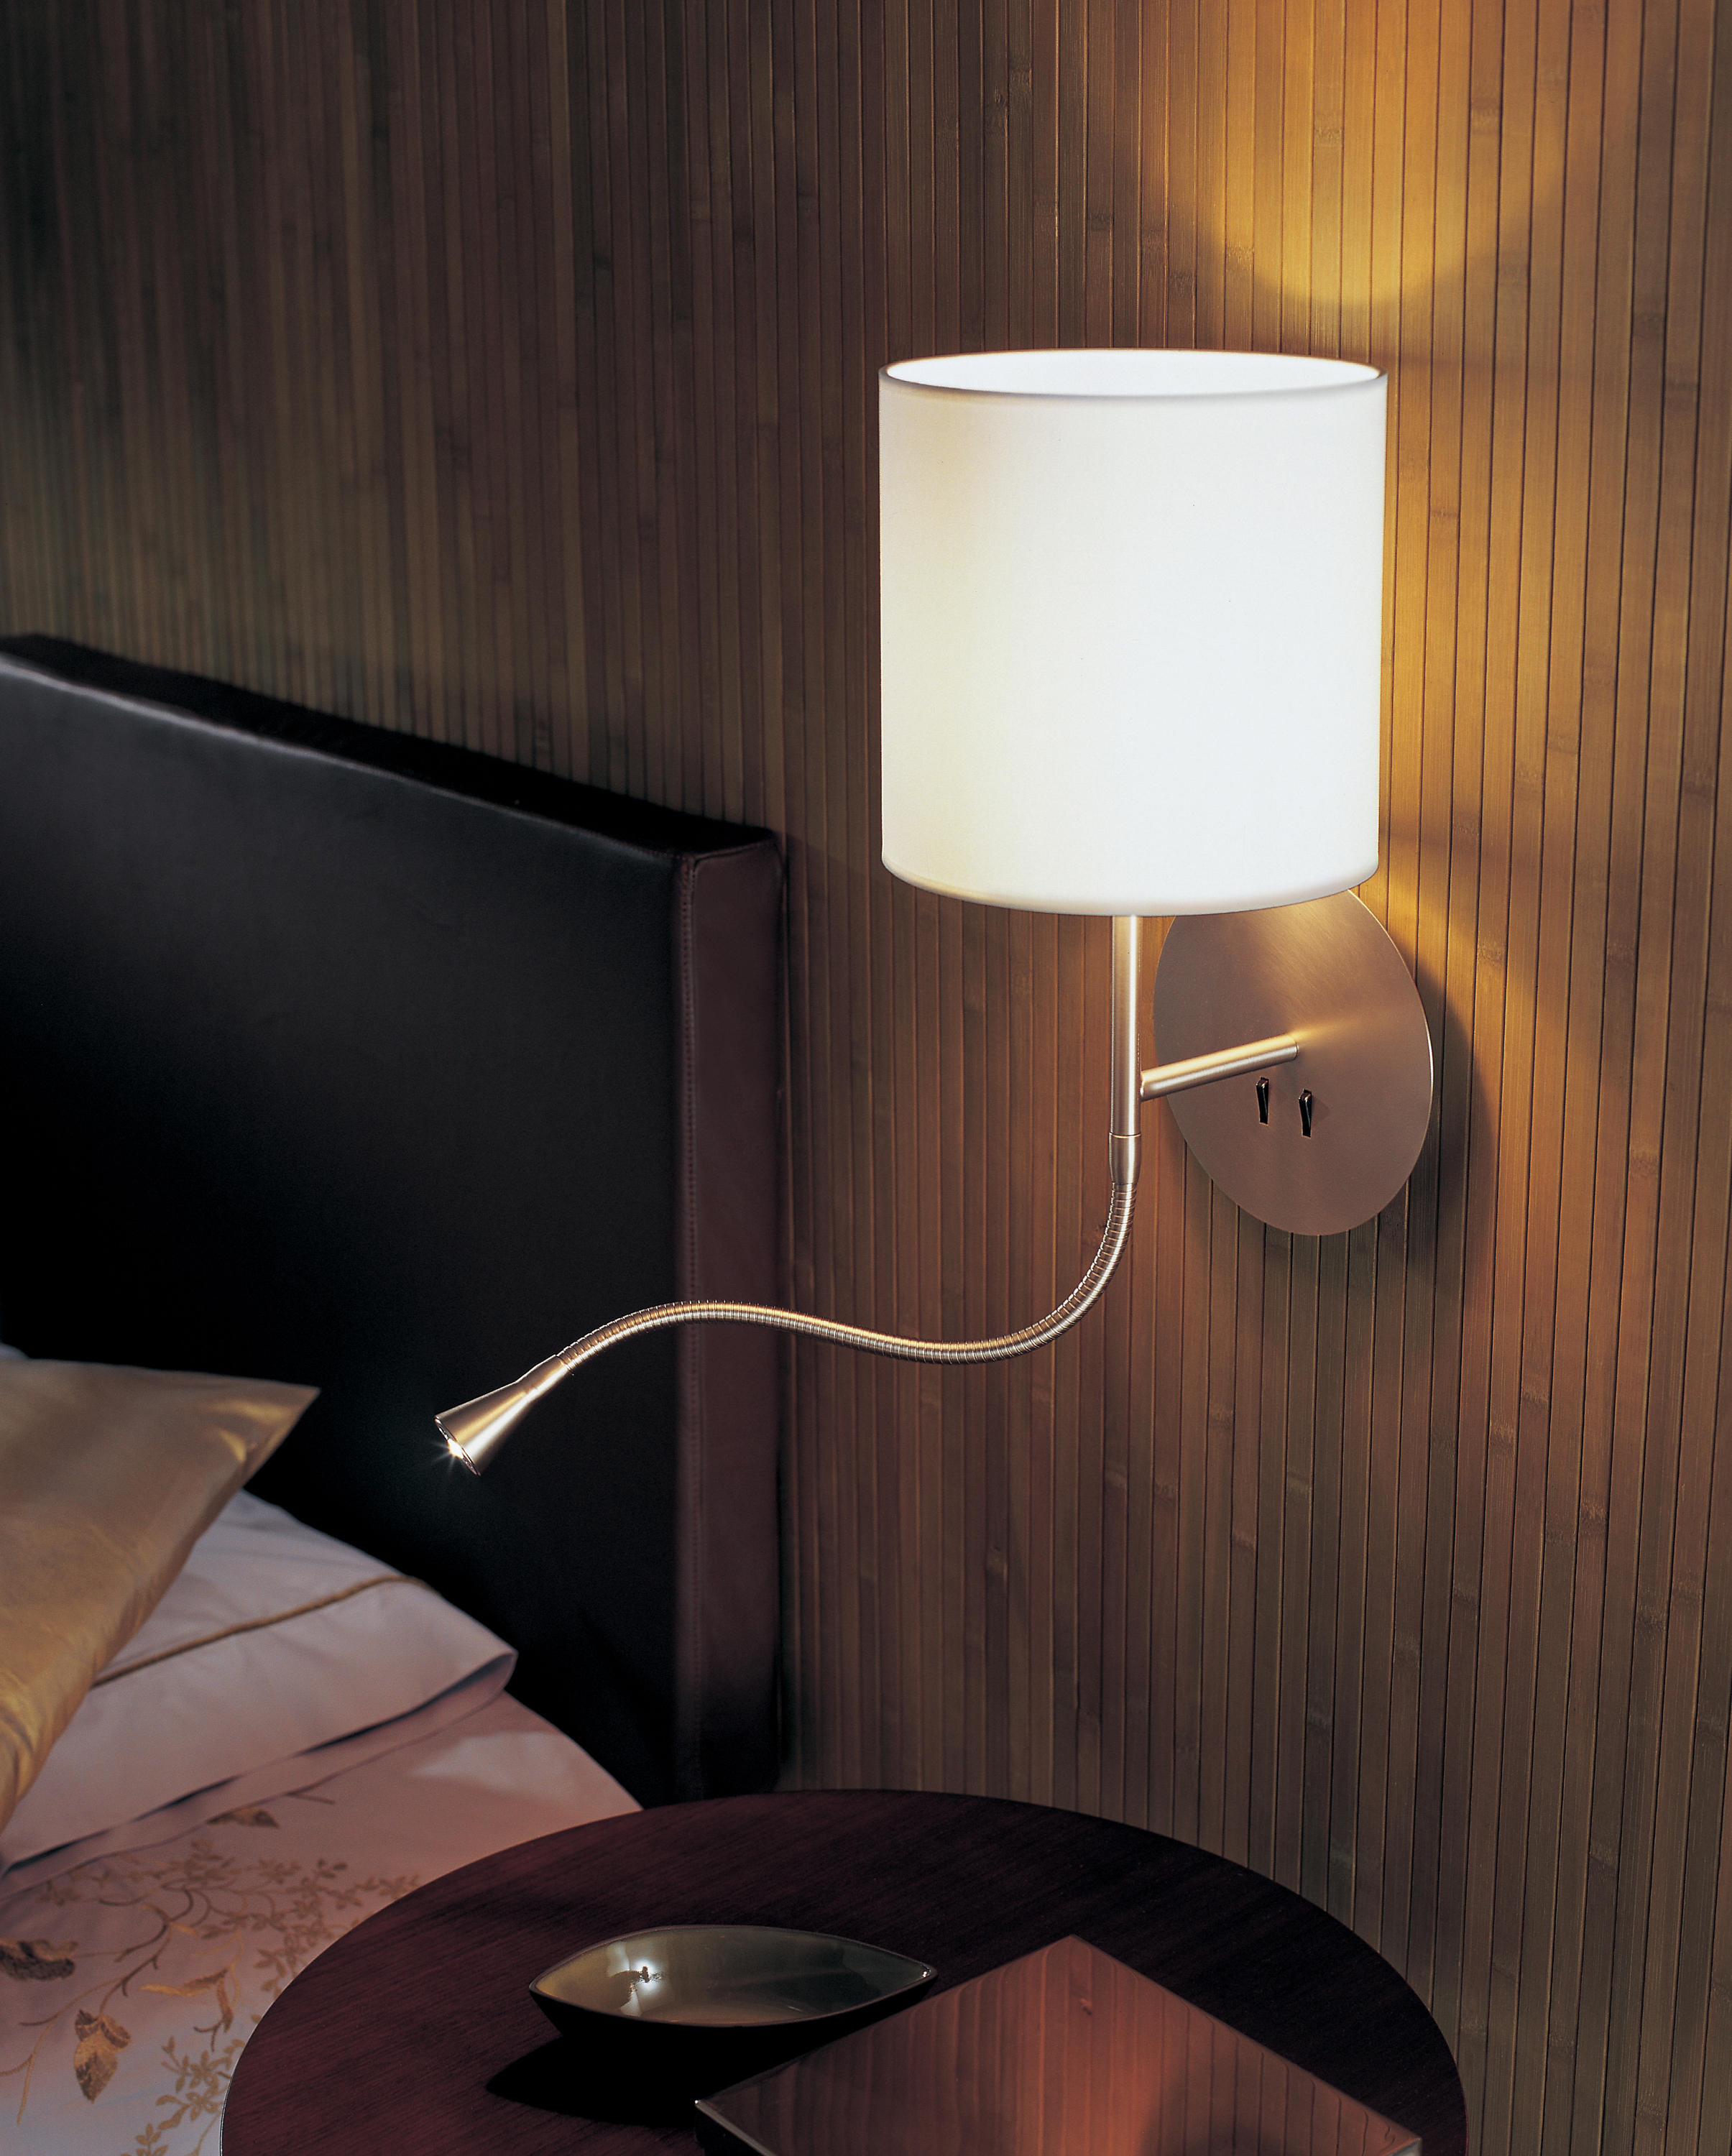 HOTEL WALL LAMP - General lighting from Carpyen | Architonic